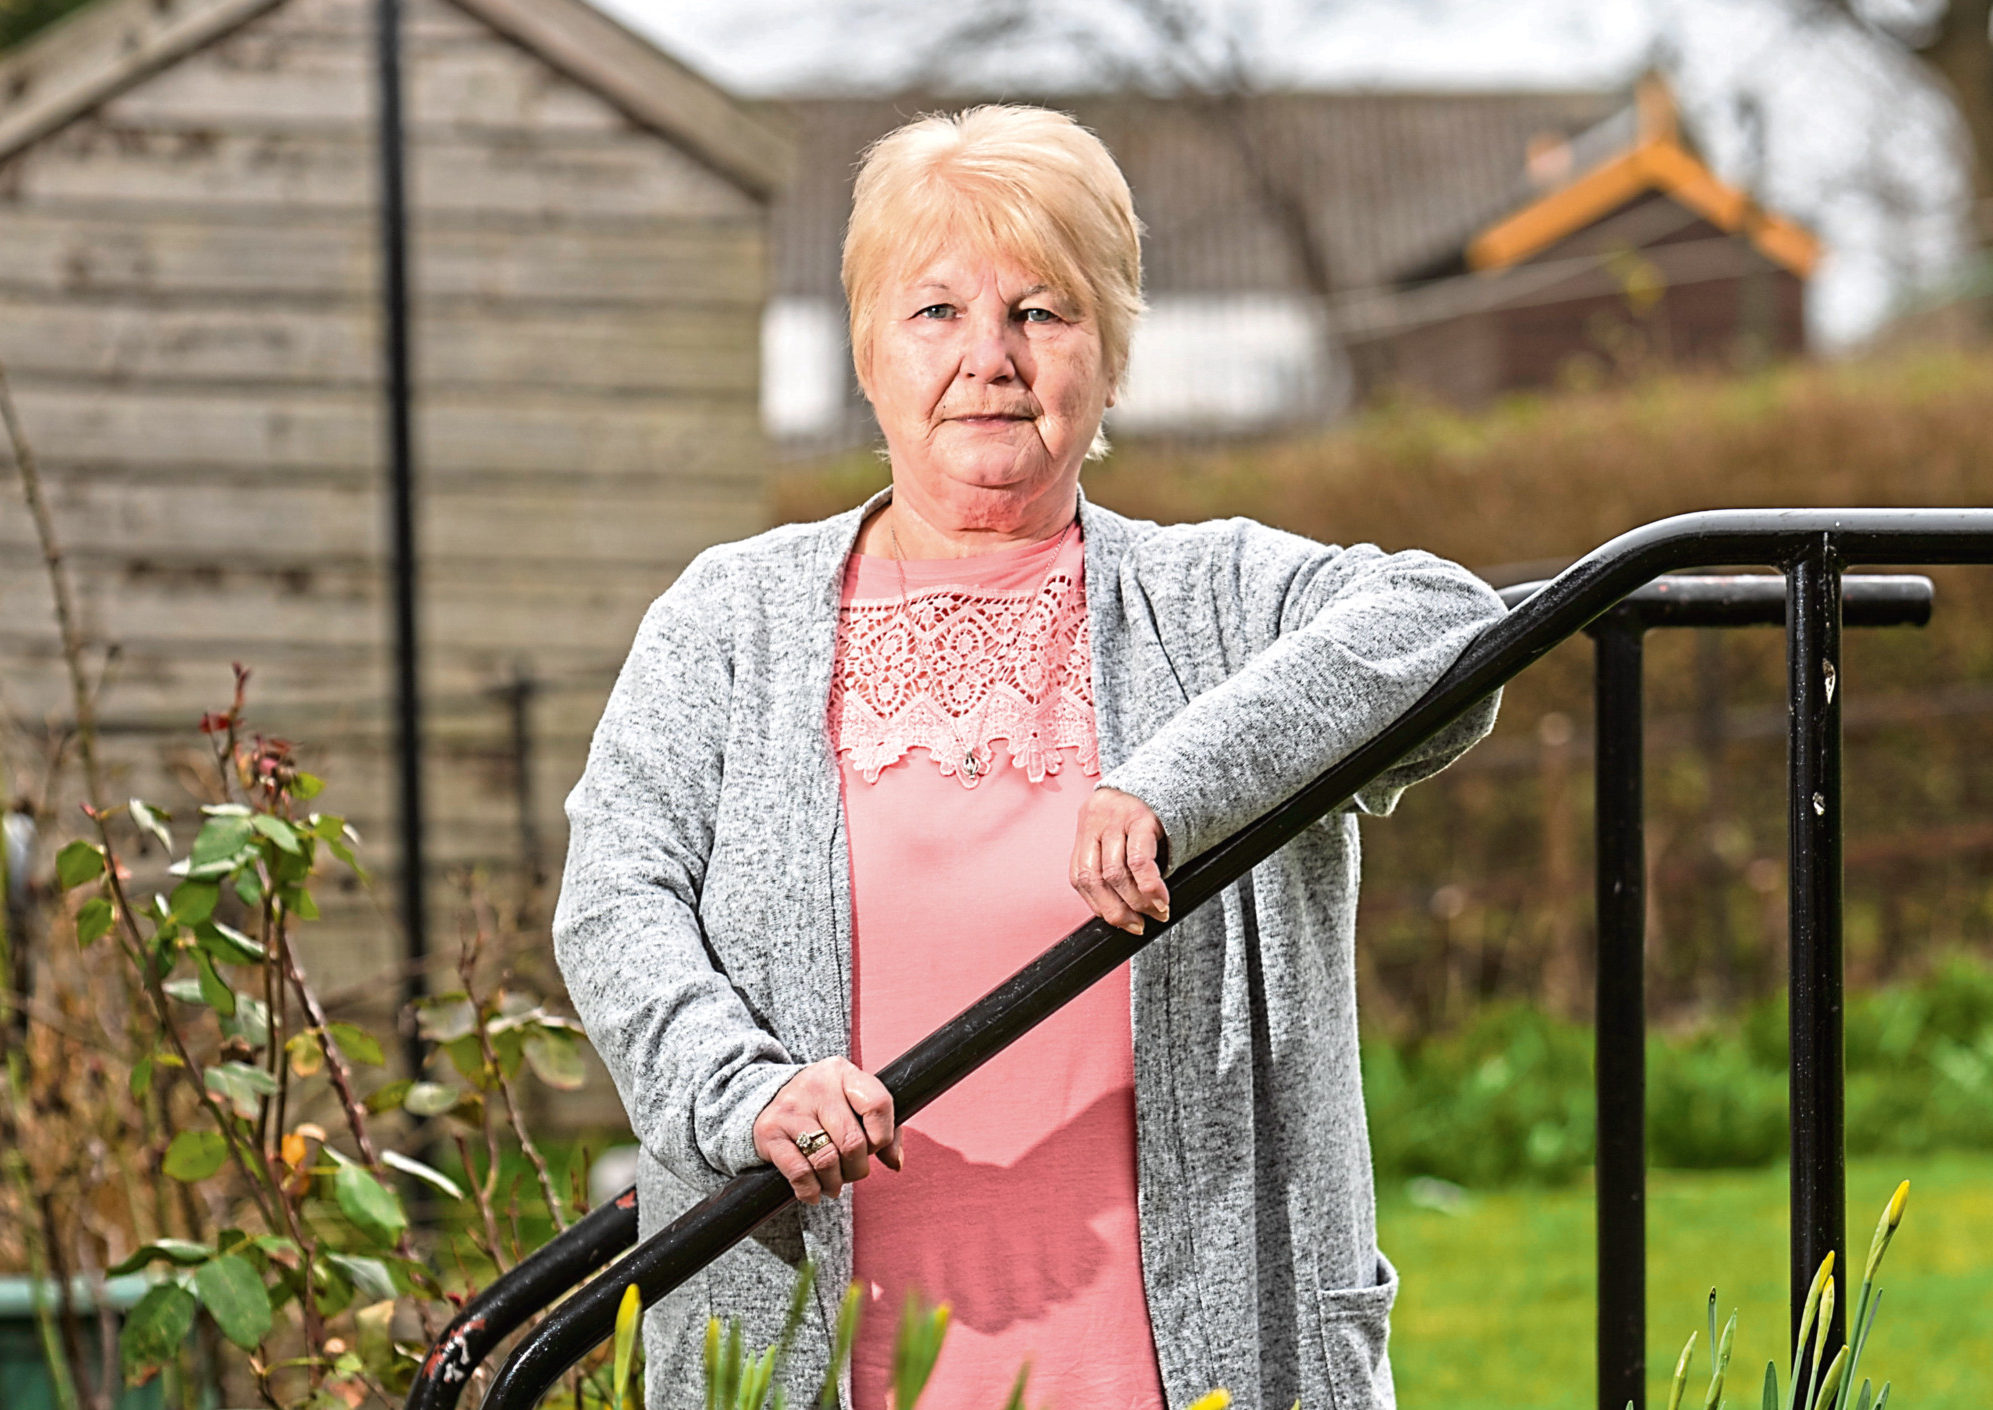 Margaret suffers from Charles Bonnet Syndrome, a medical condition involving her eyes, which causes her to see things that aren't there. What she sees are spiders and snakes – of all kinds and sizes. She has seen a spider measuring a foot across and a snake the length of her sofa.